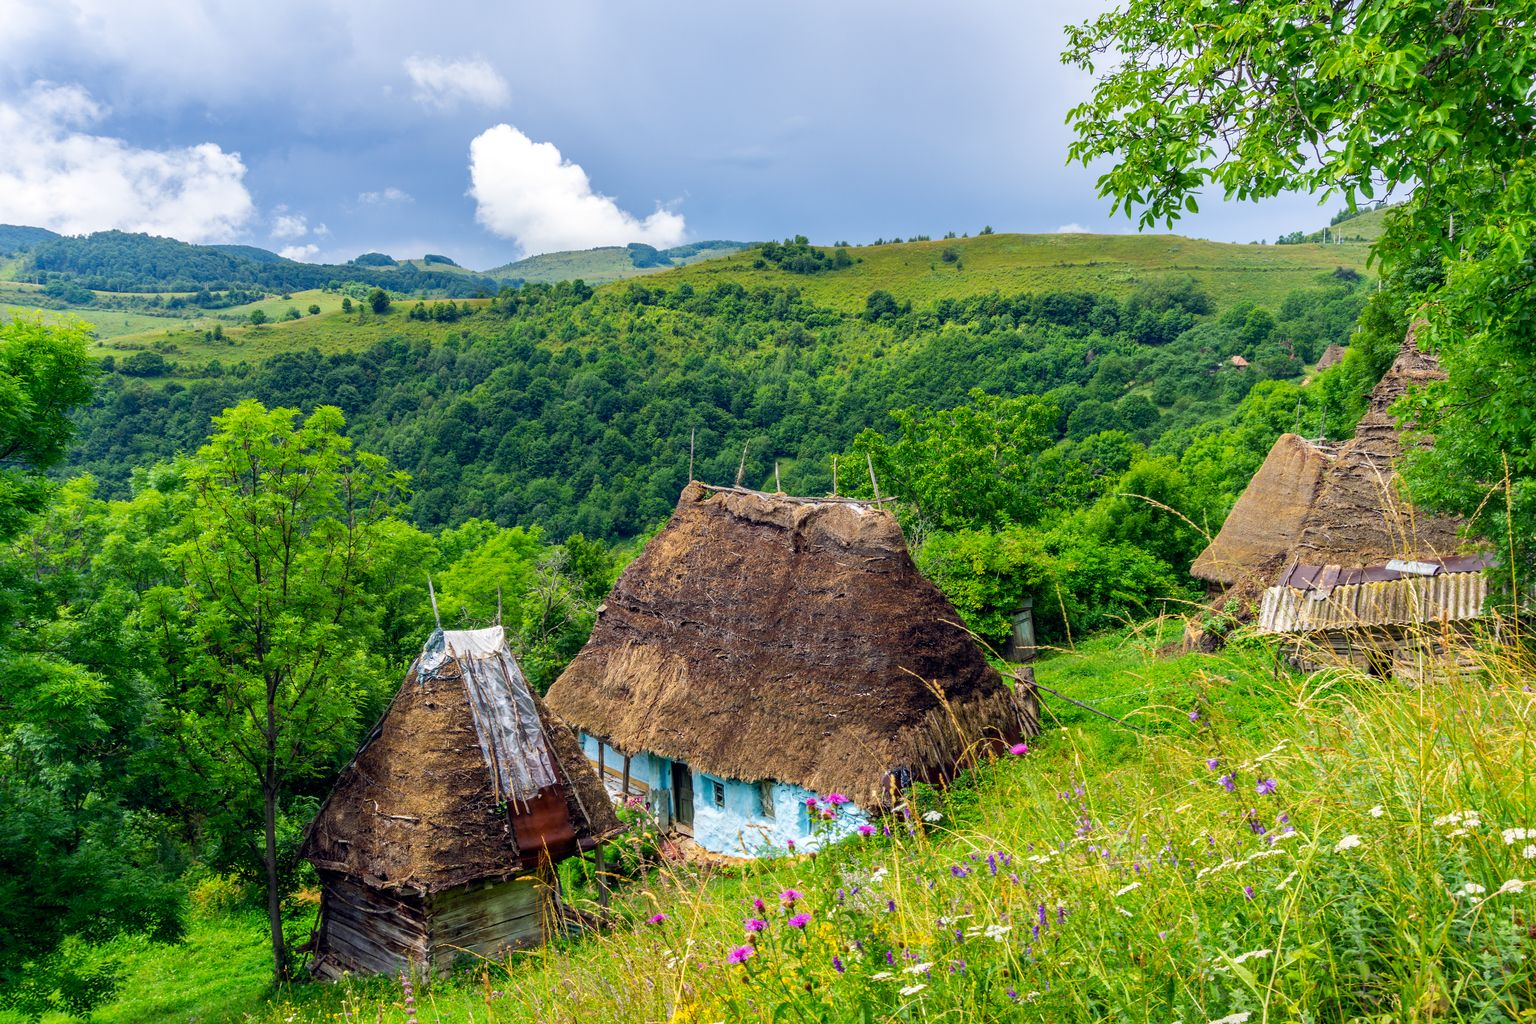 Countryside in Romania